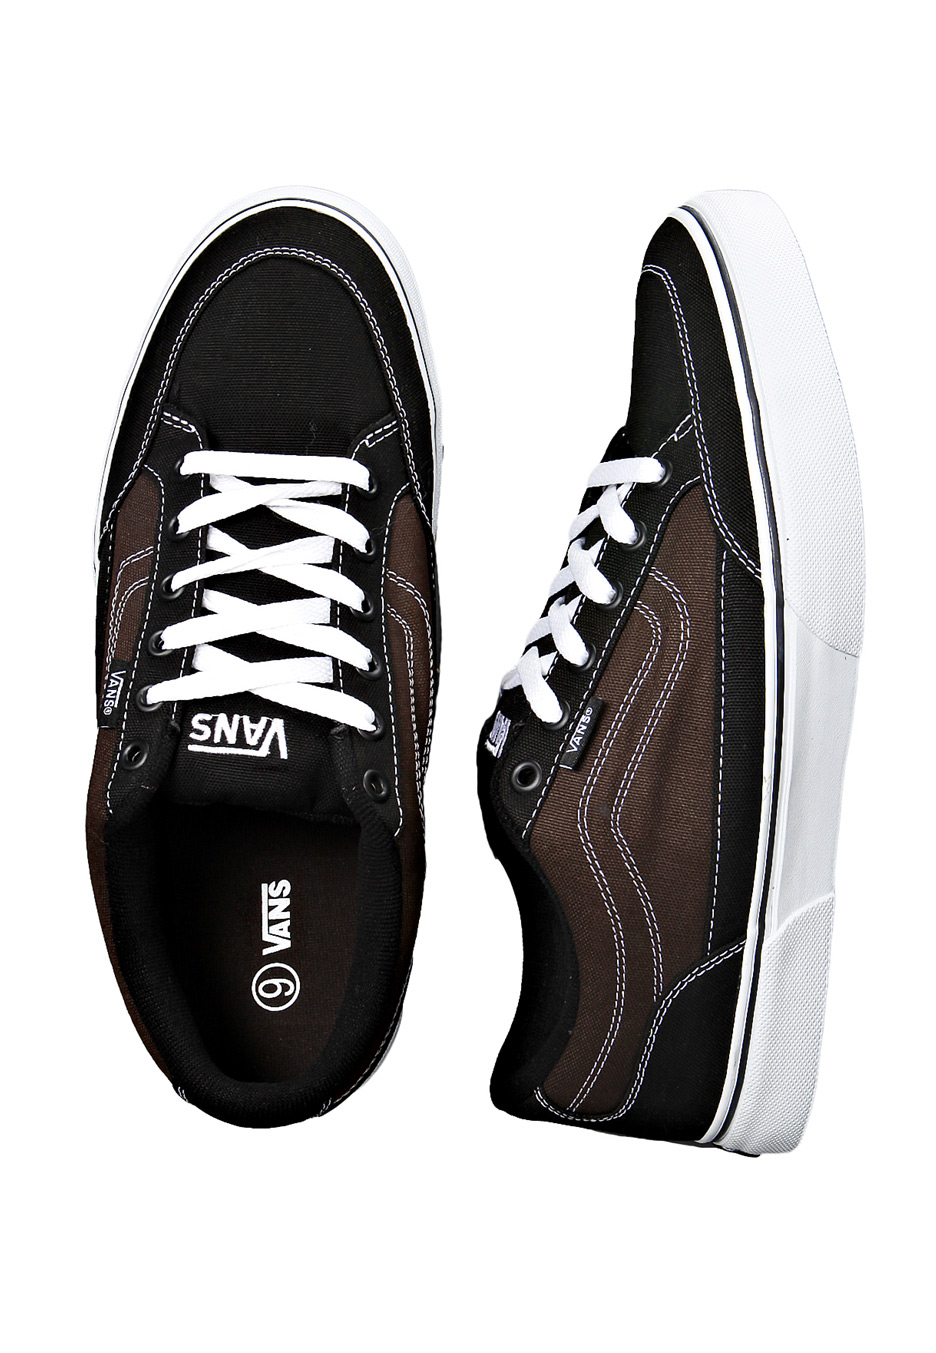 1dfc2fa4a5 Vans - Bearcat Canvas Black/Espresso - Shoes - Impericon.com UK